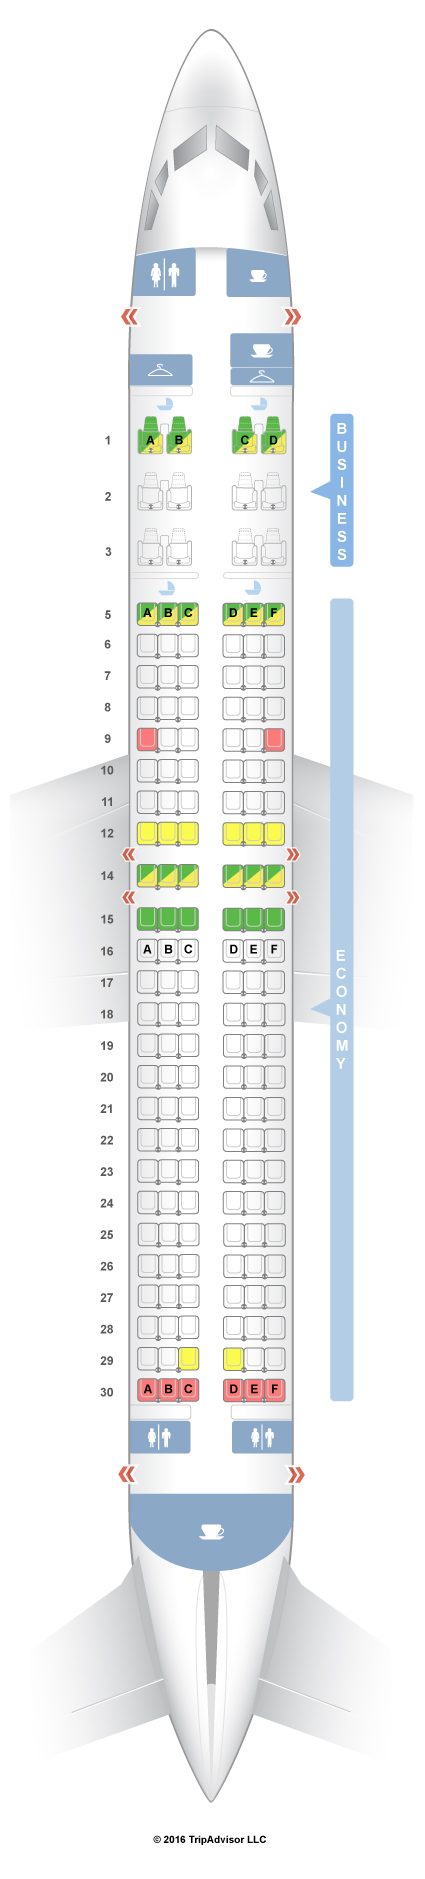 737 800 Seat Map SeatGuru Seat Map Silkair